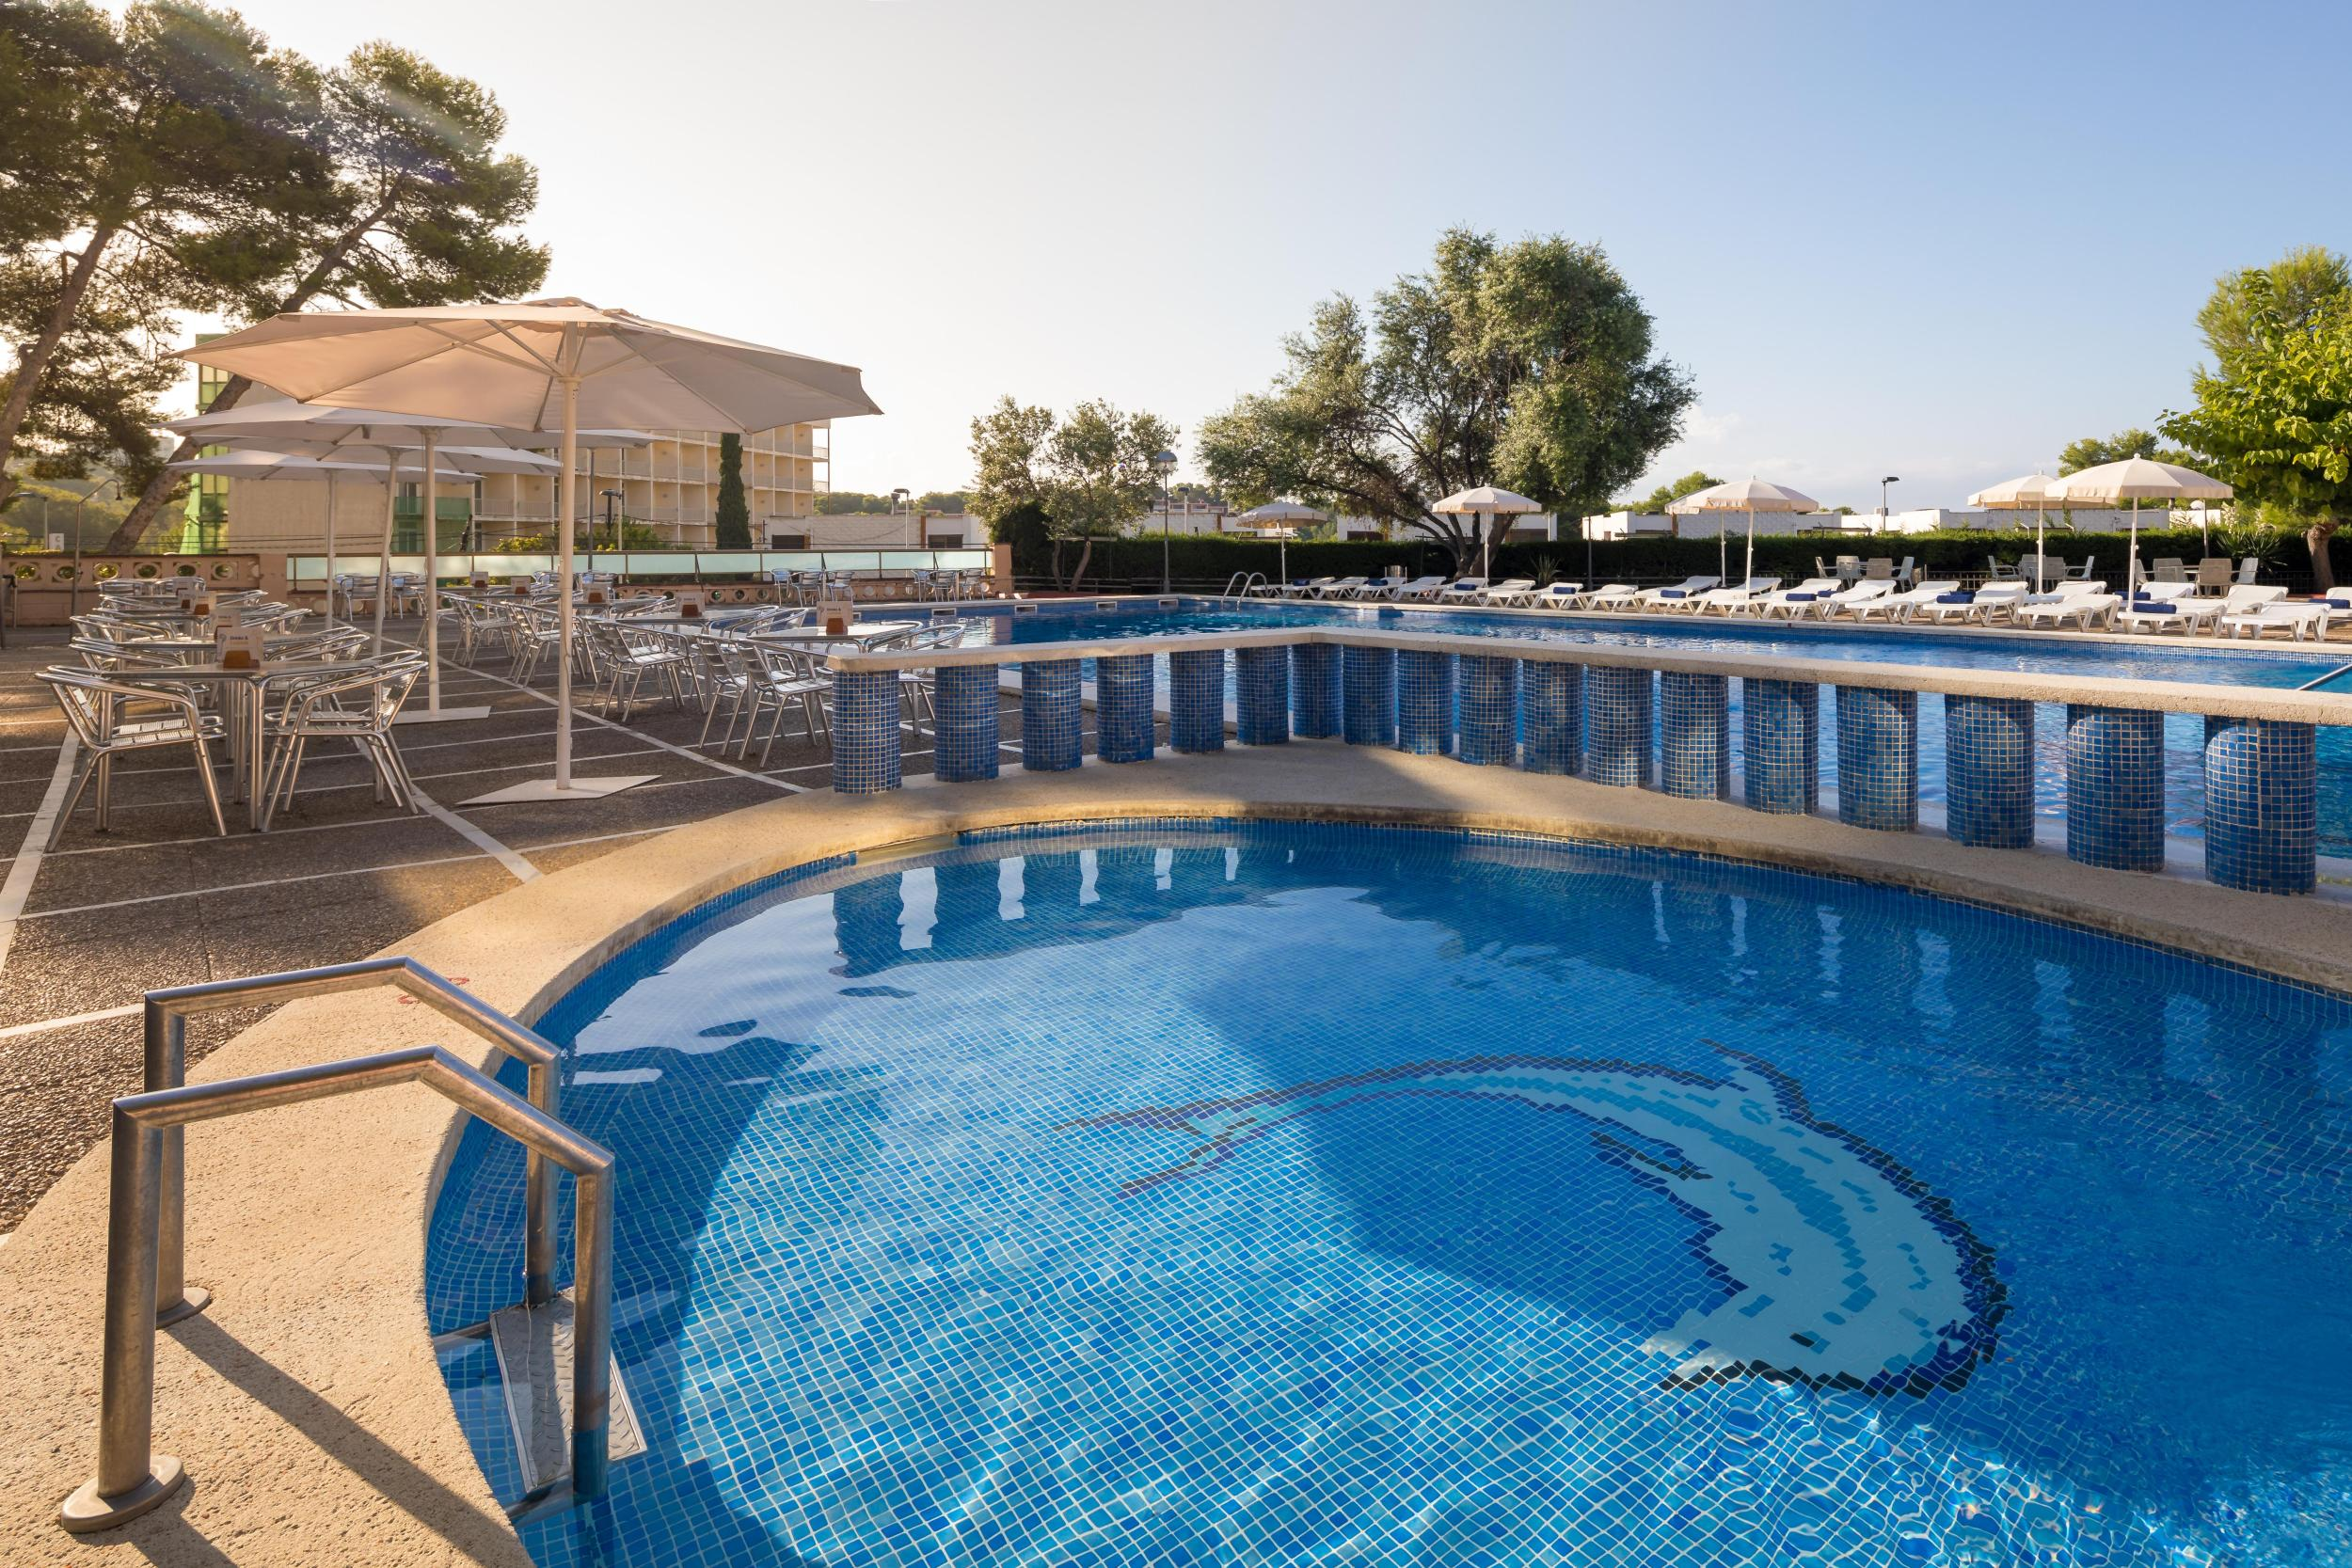 H.TOP Molinos Park Hotel in Salou, Costa Dorada, Spain